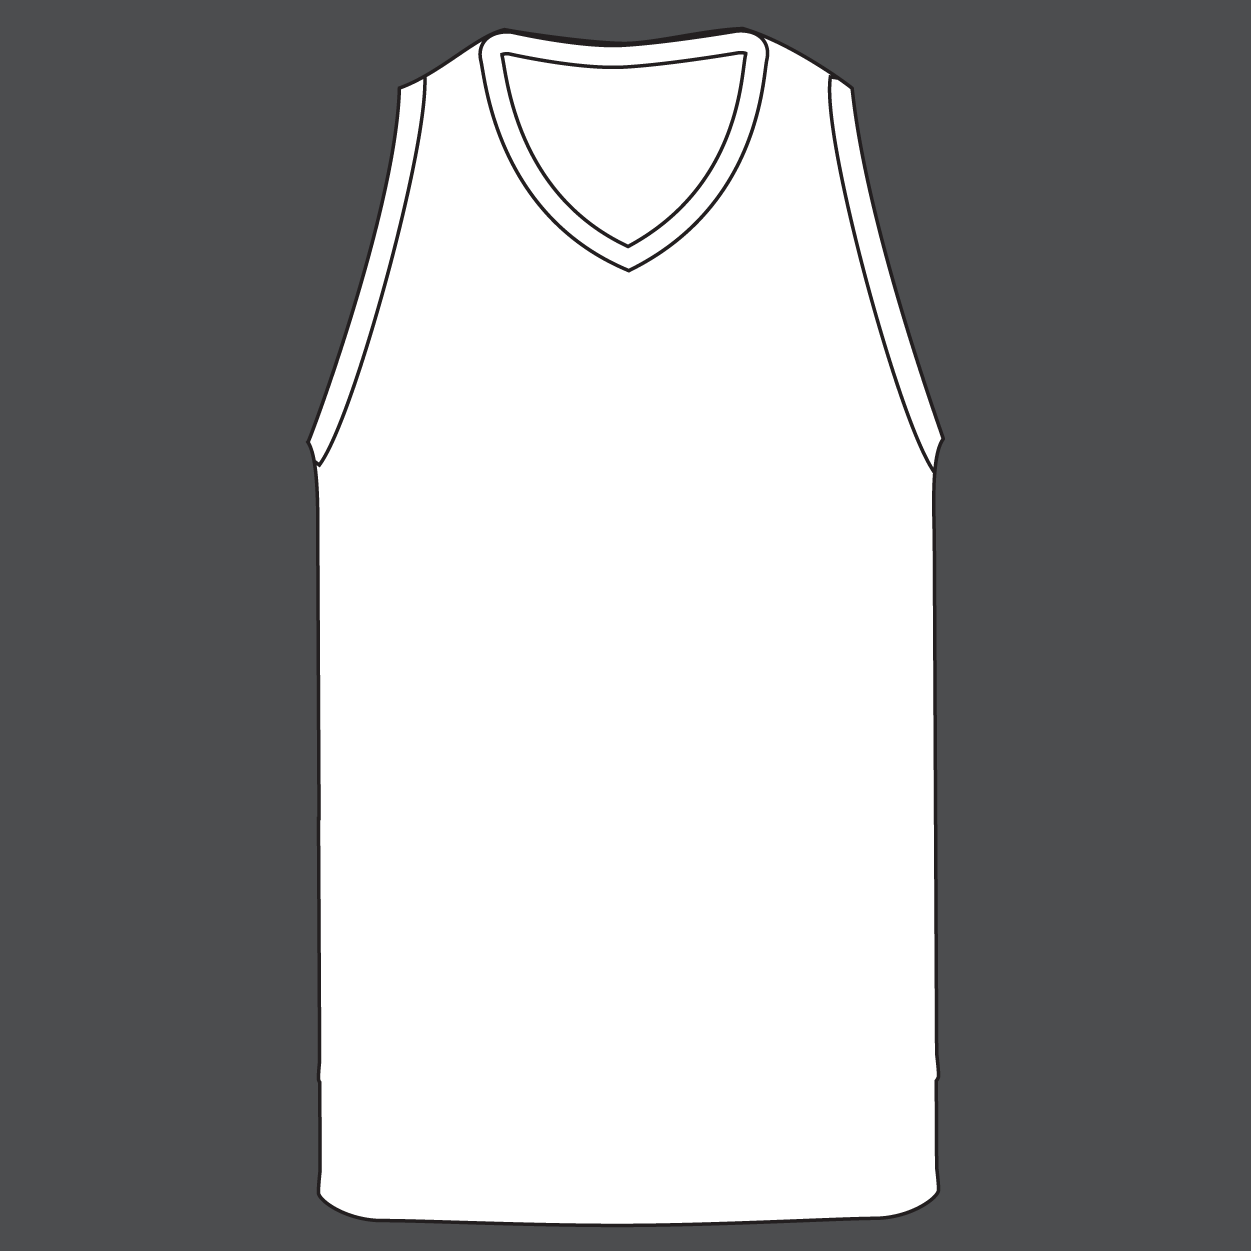 Women's Basketball Jersey - Retail Price: $49.99  Team Price 12-23: $39.99 Team Price 24+: $34.99 Team Price 50+: Contact your Emblem Rep for a custom quoteFabric: LycraSizes: YXS, YS, YM, YL, XS, S, M, L, XL, XXL, XXXLOptions: +Custom name $4.99 (Custom number included)